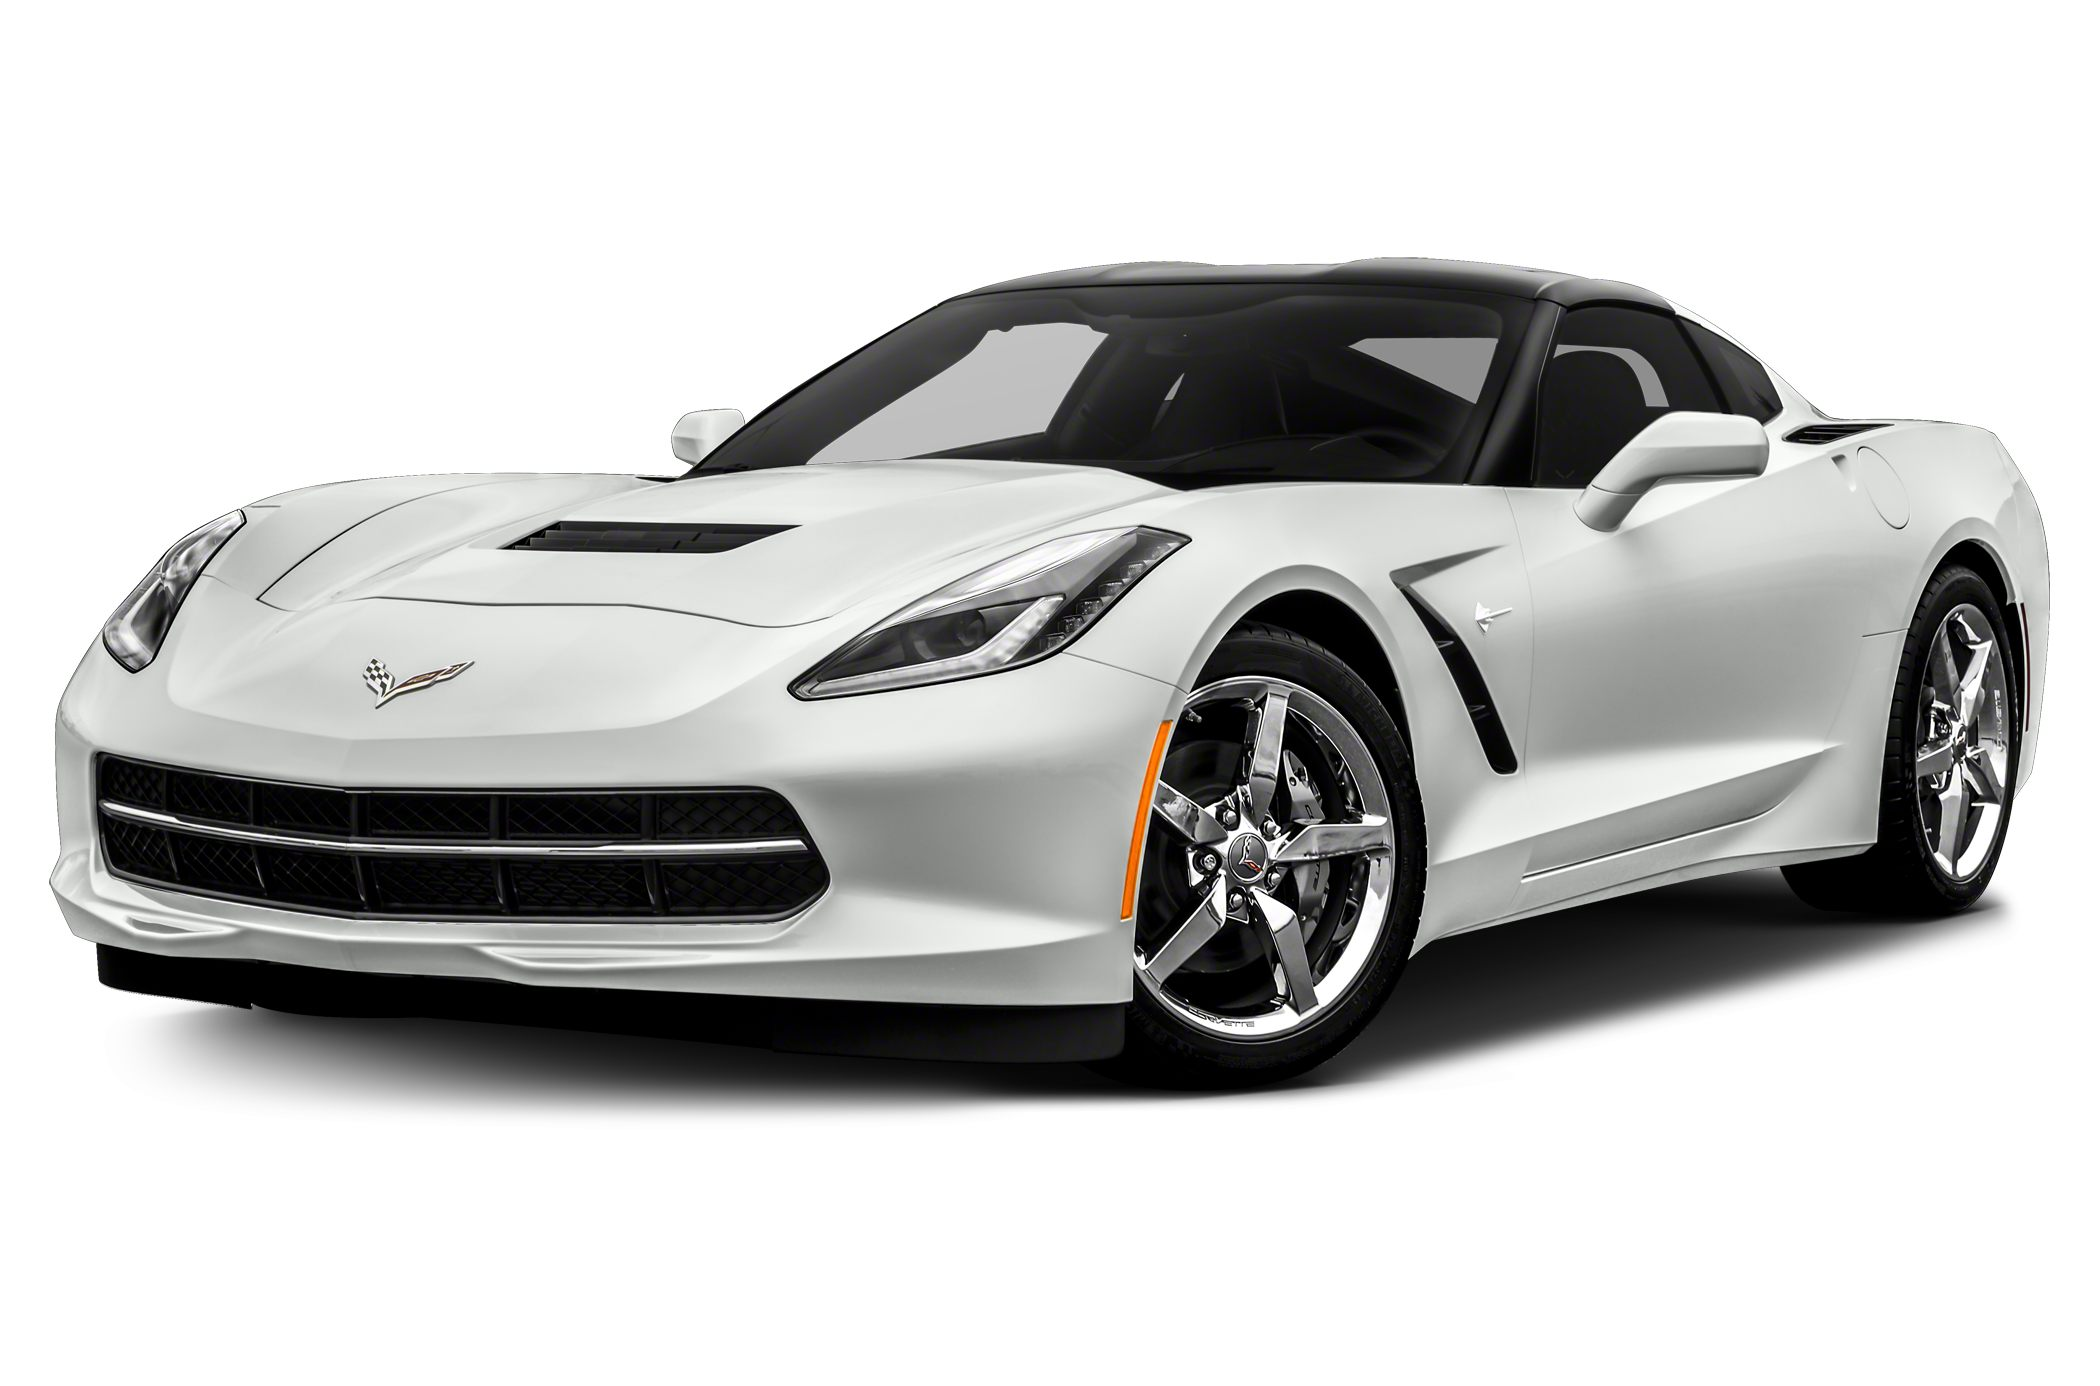 2014 Chevrolet Corvette Stingray Base Coupe for sale in Alexandria for $65,130 with 0 miles.